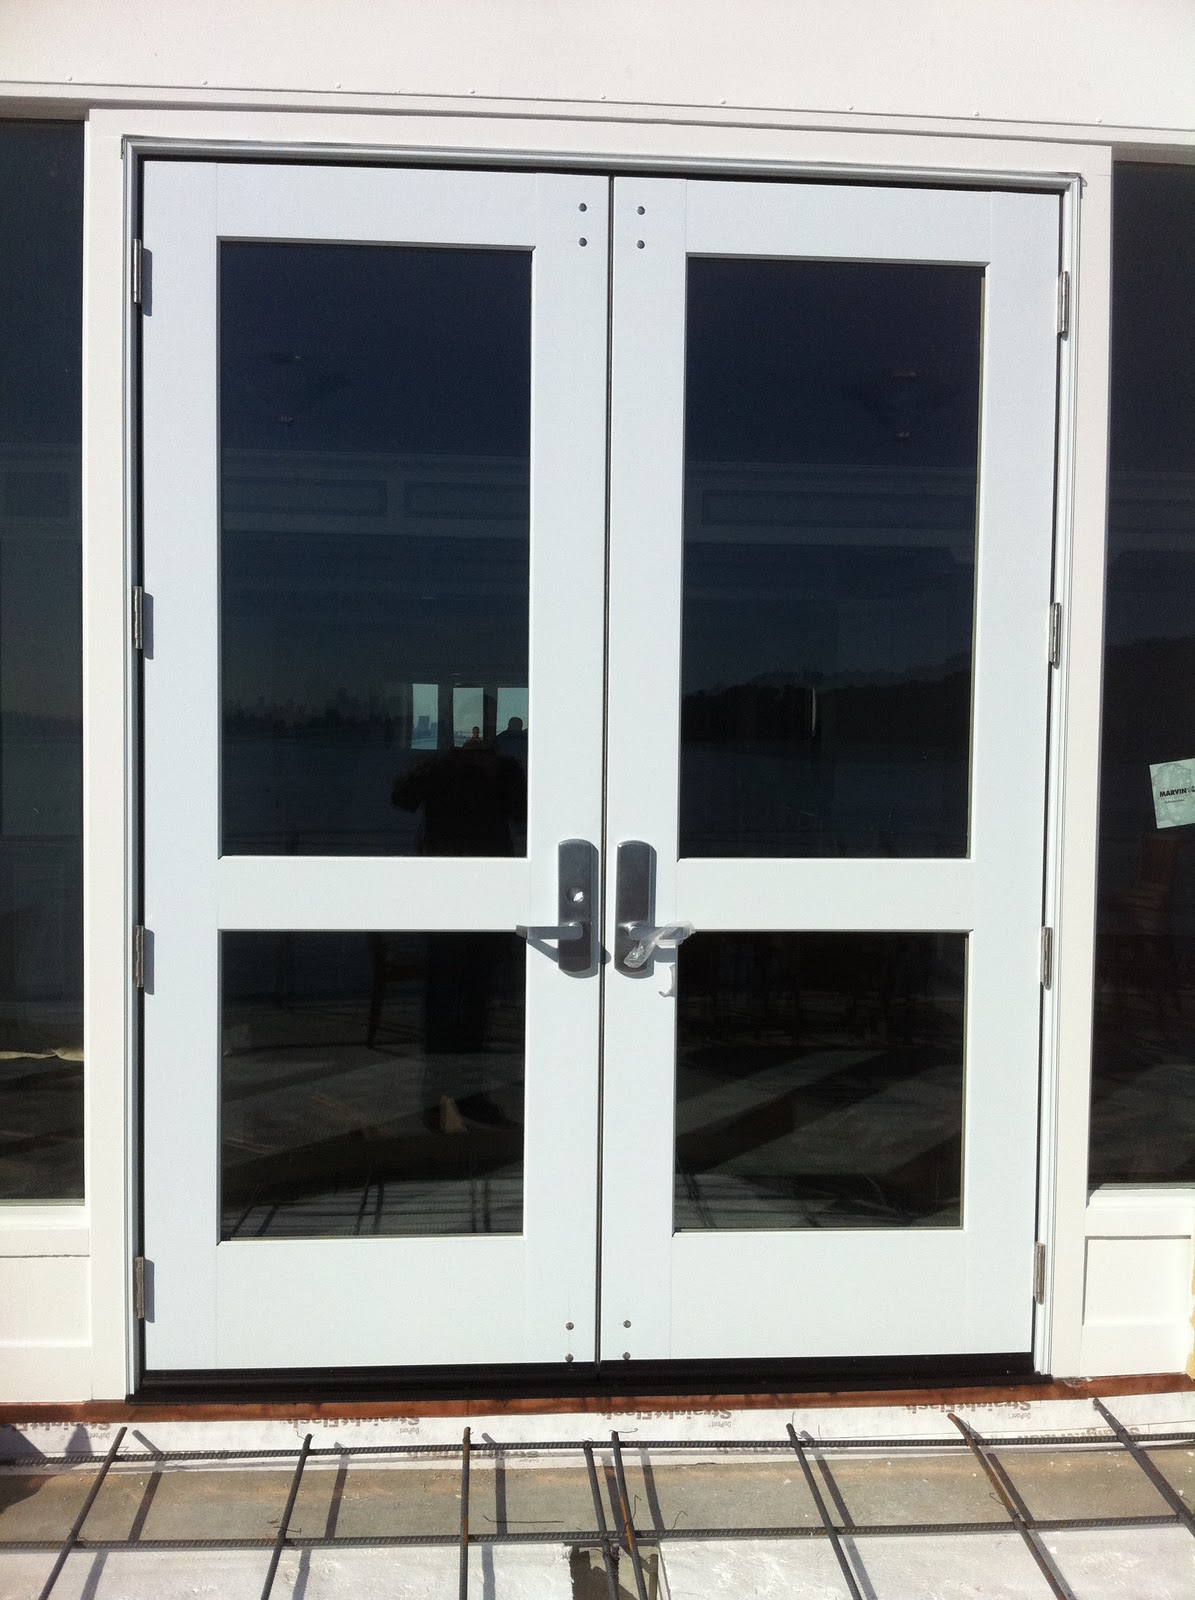 marvin commercial door installation with von duprin hardware